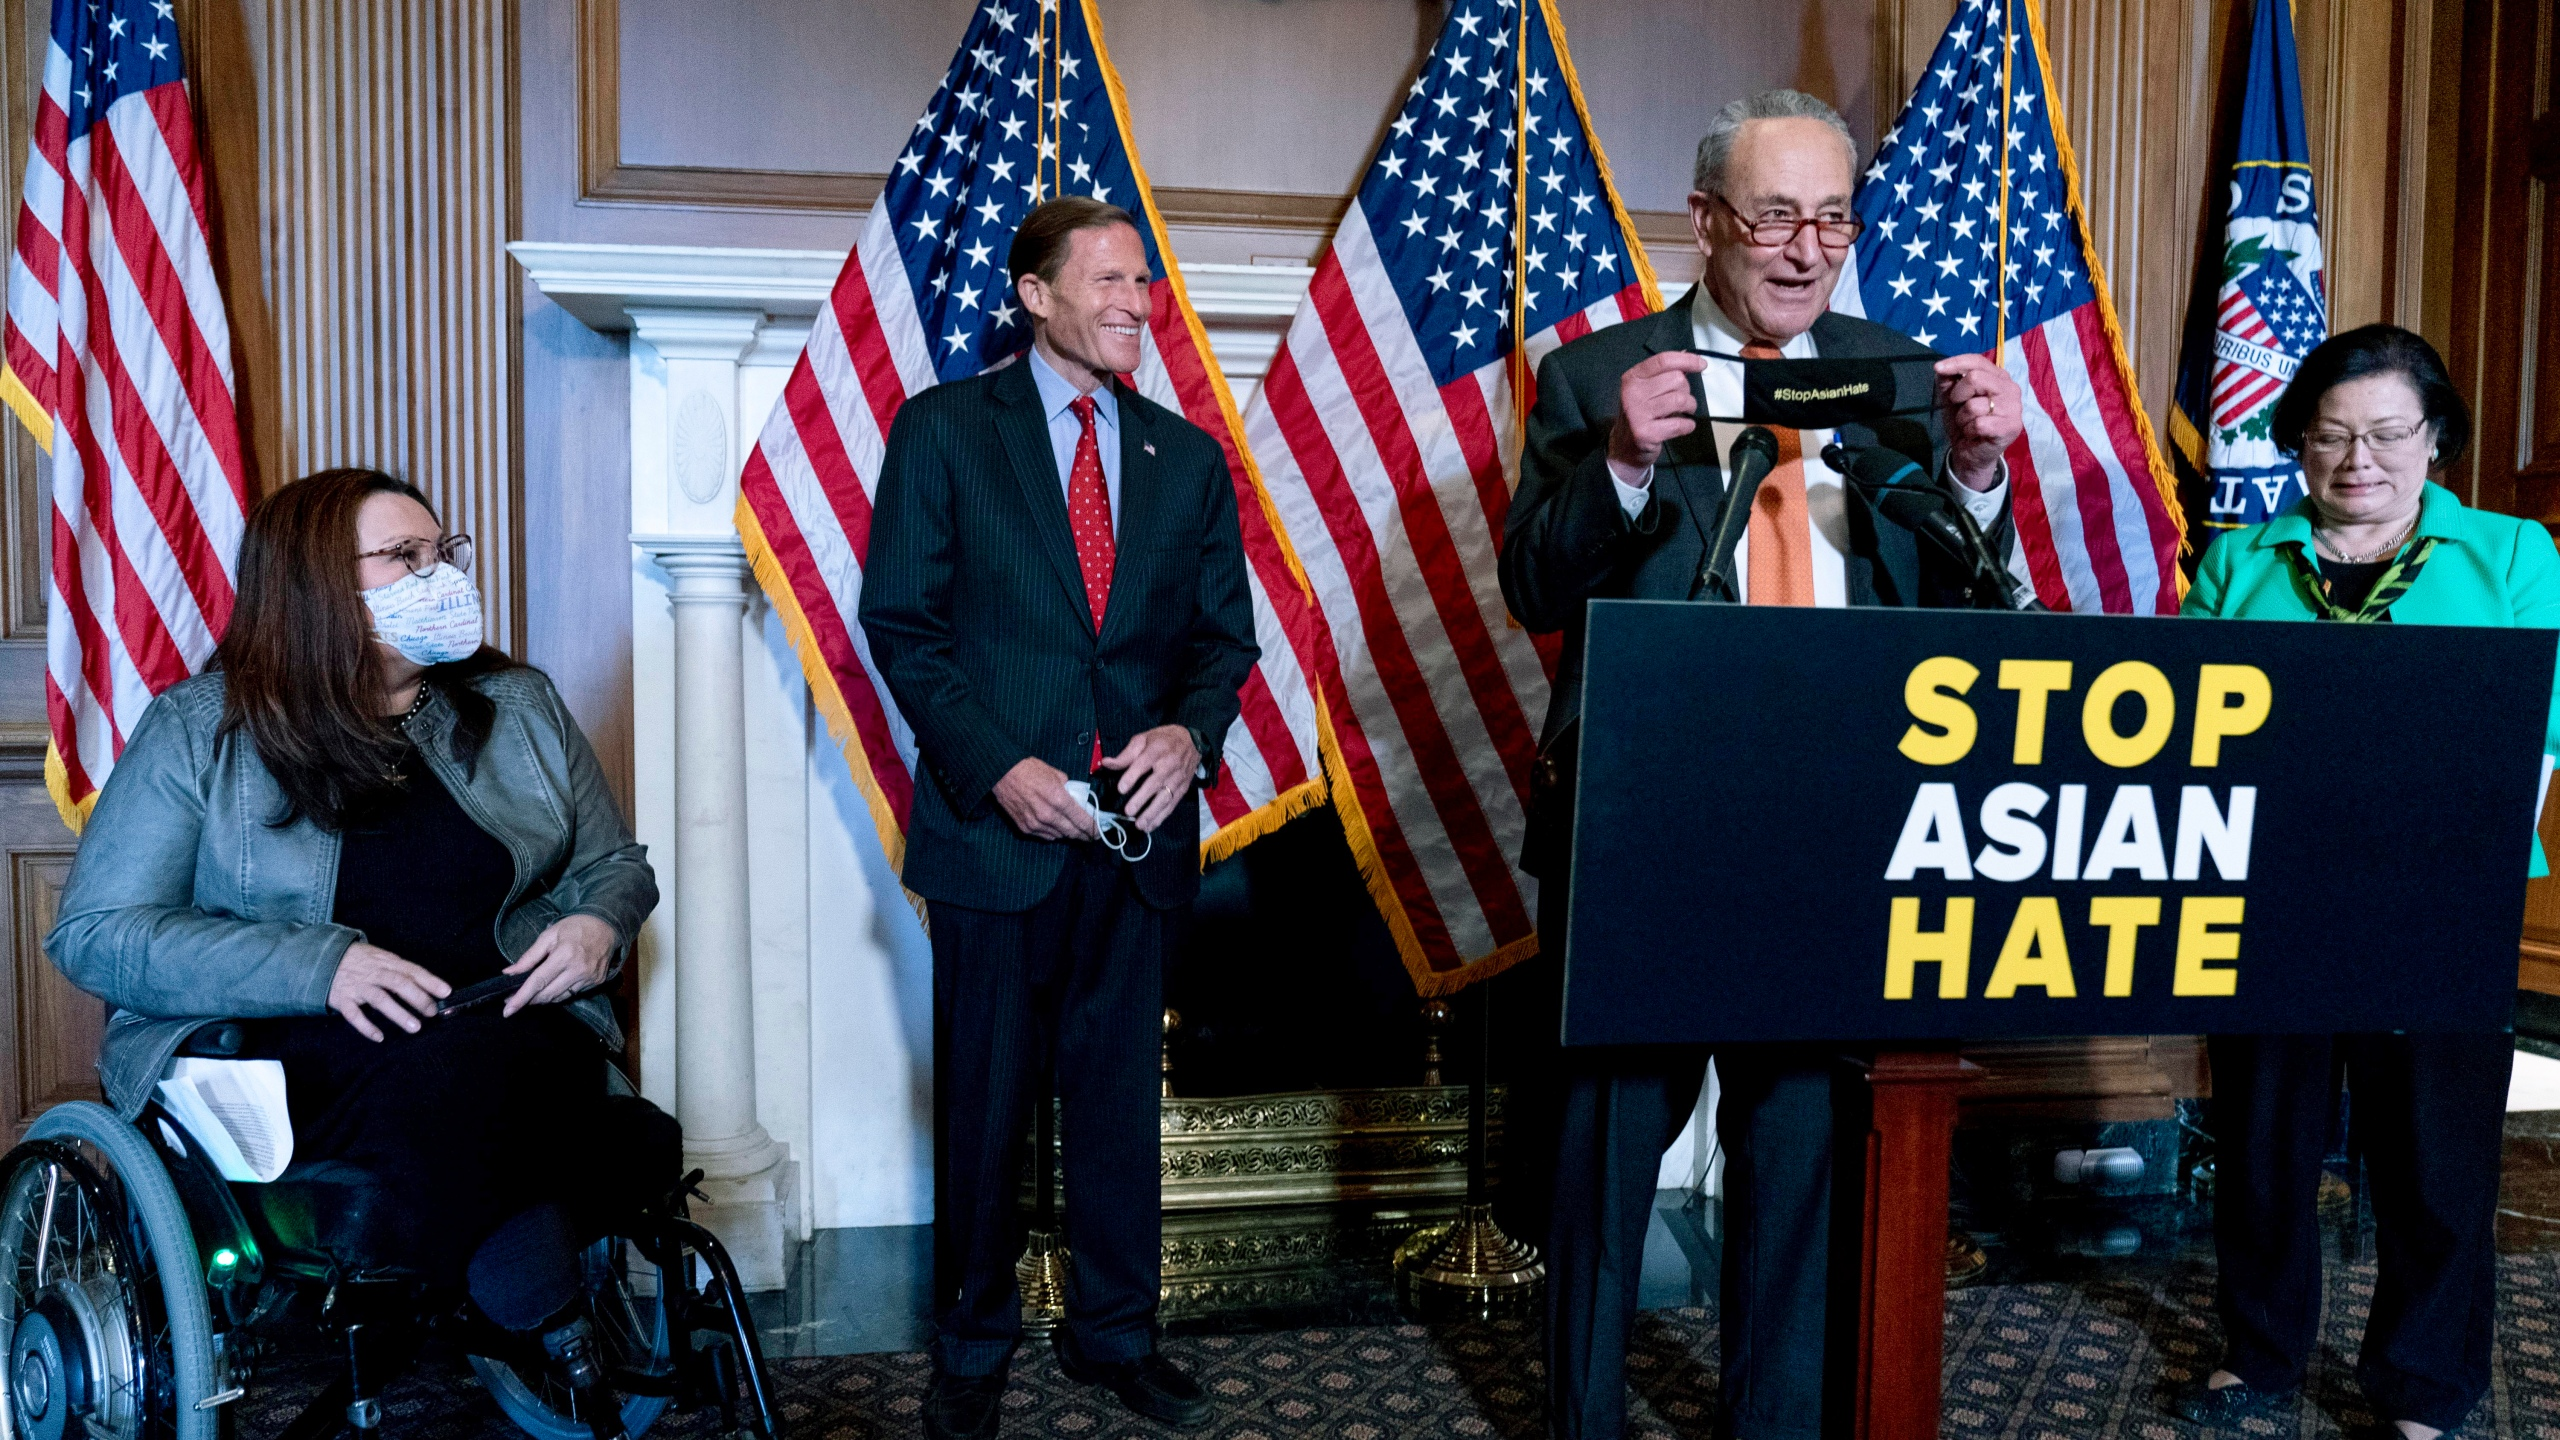 Senate Majority Leader Chuck Schumer of N.Y., accompanied by Sen. Mazie Hirono, D-Hawaii, Sen. Tammy Duckworth, D-Ill., and Sen. Richard Blumenthal, D-Conn., speaks at a news conference after the Senate passed a COVID-19 Hate Crimes Act on Capitol Hill, Thursday, April 22, 2021, in Washington. (AP Photo/Andrew Harnik)